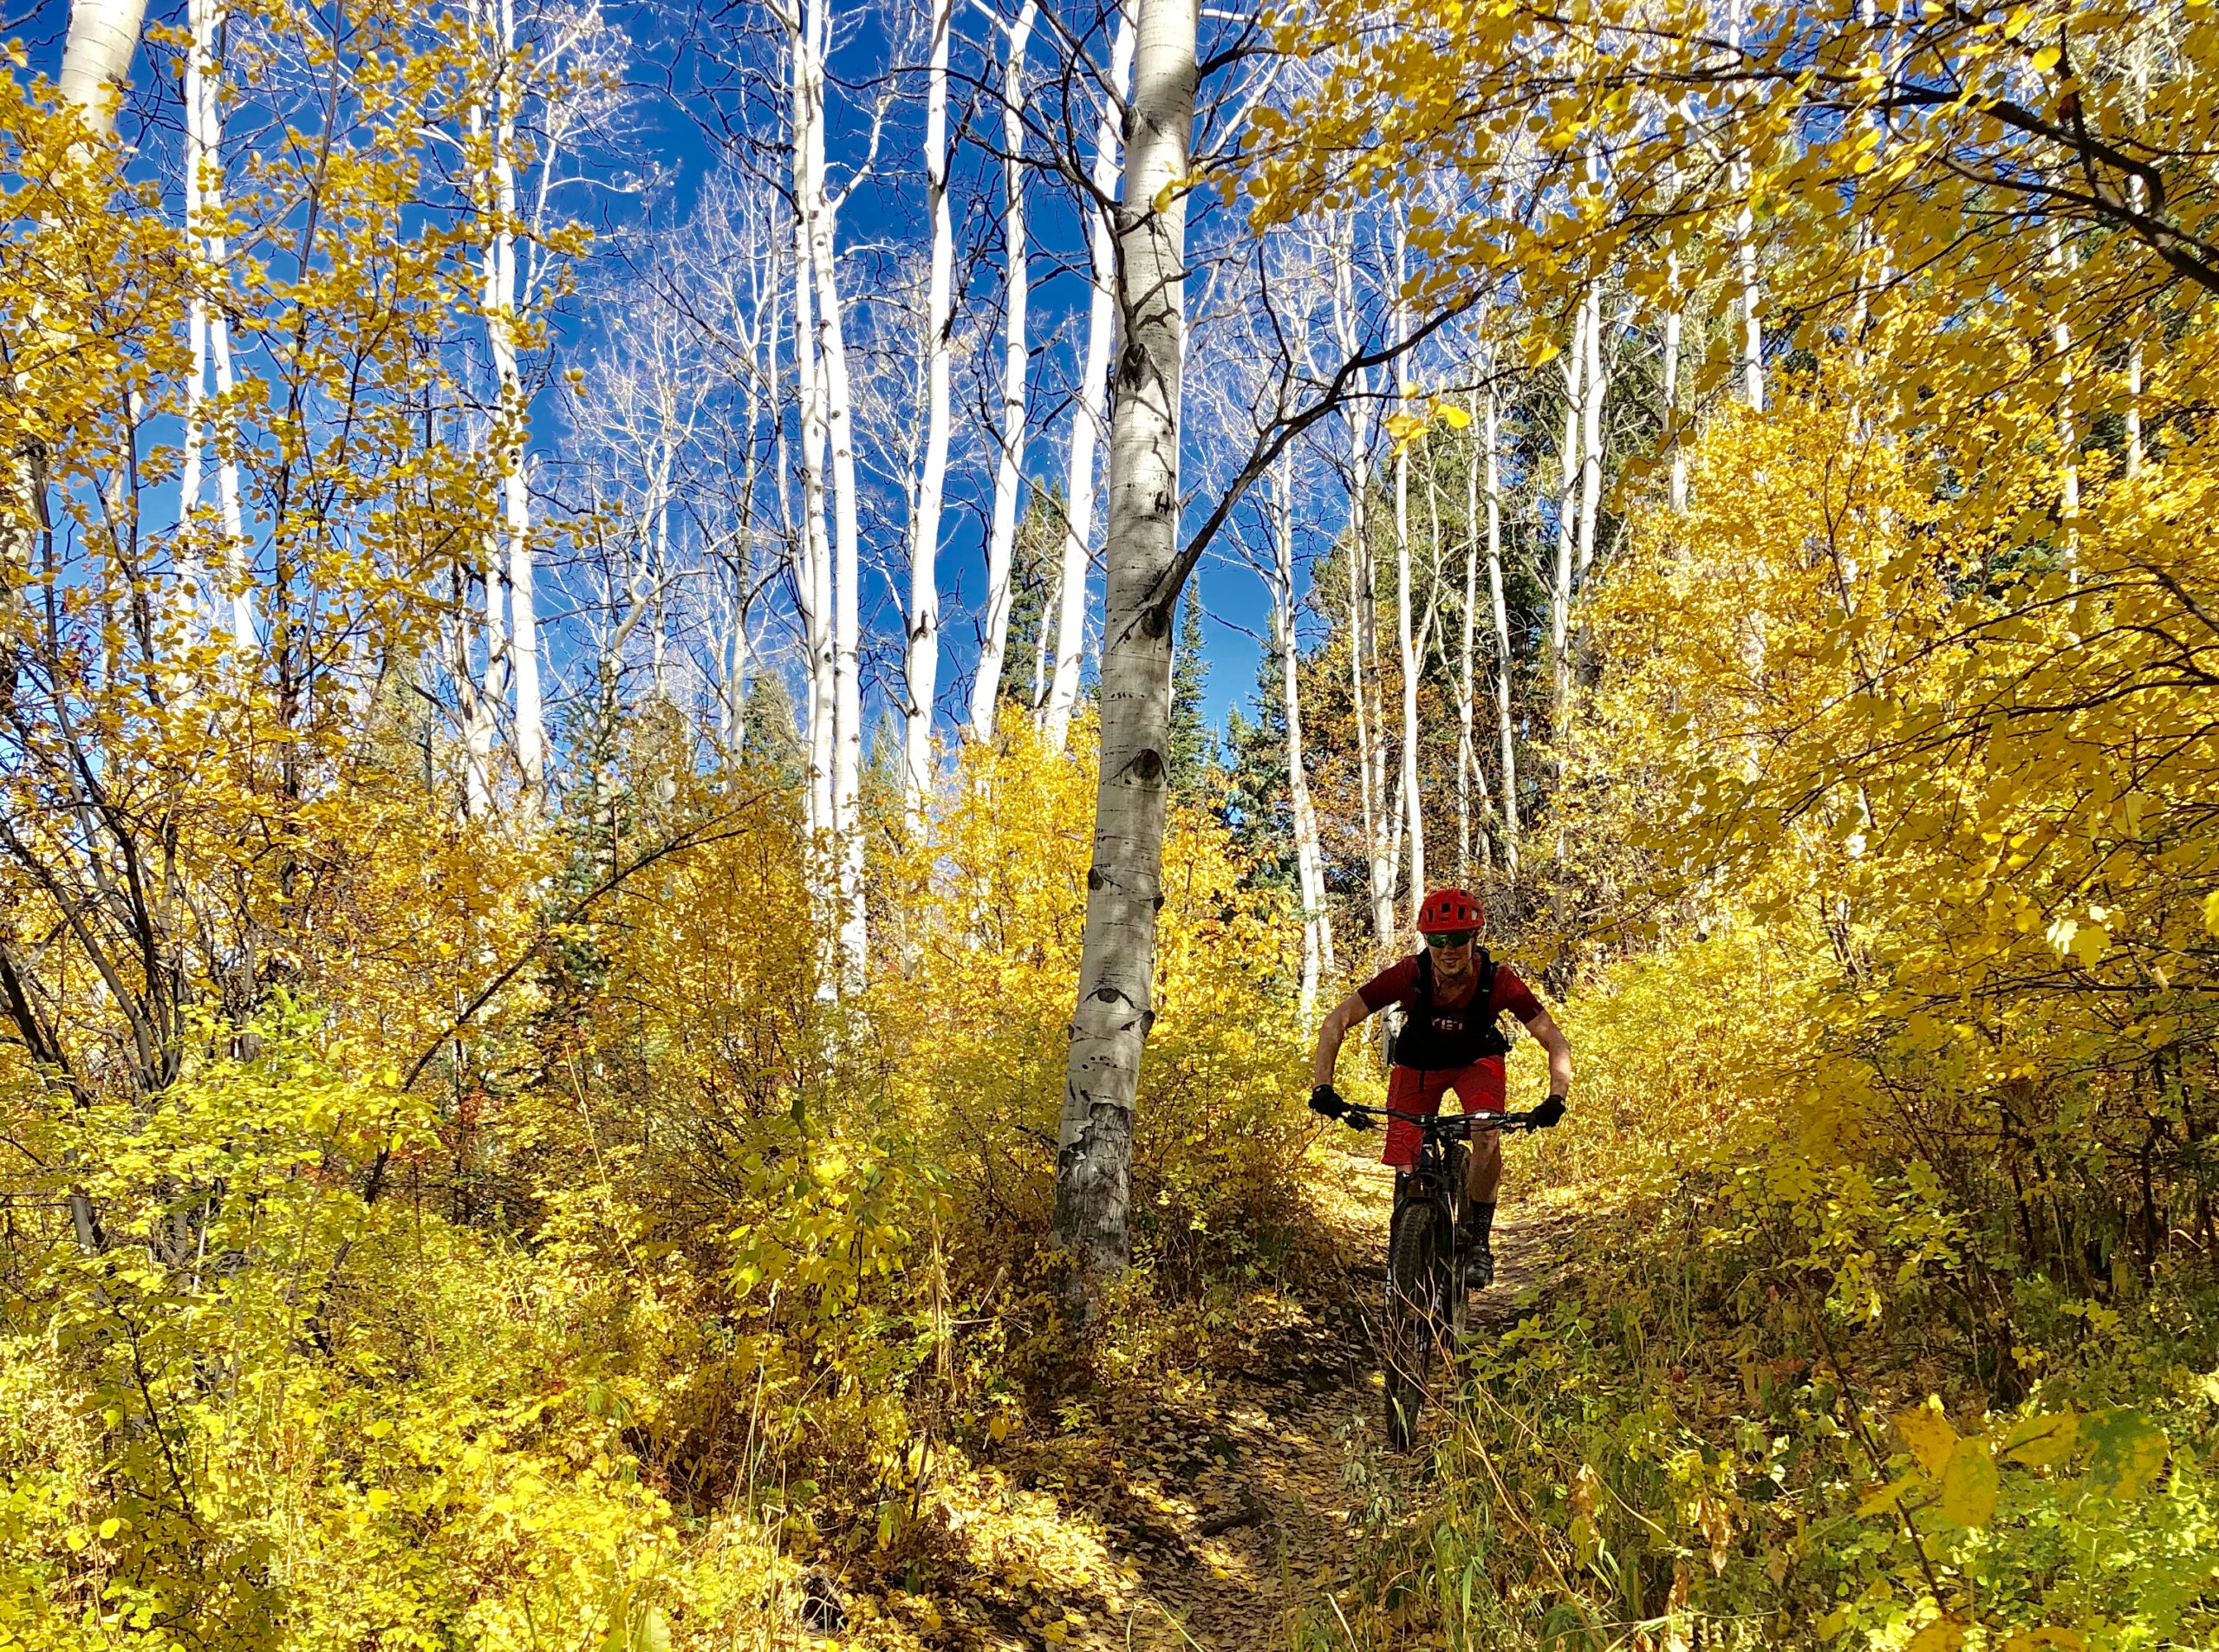 Sacred Cycle - Fall Aspens Lands 2019